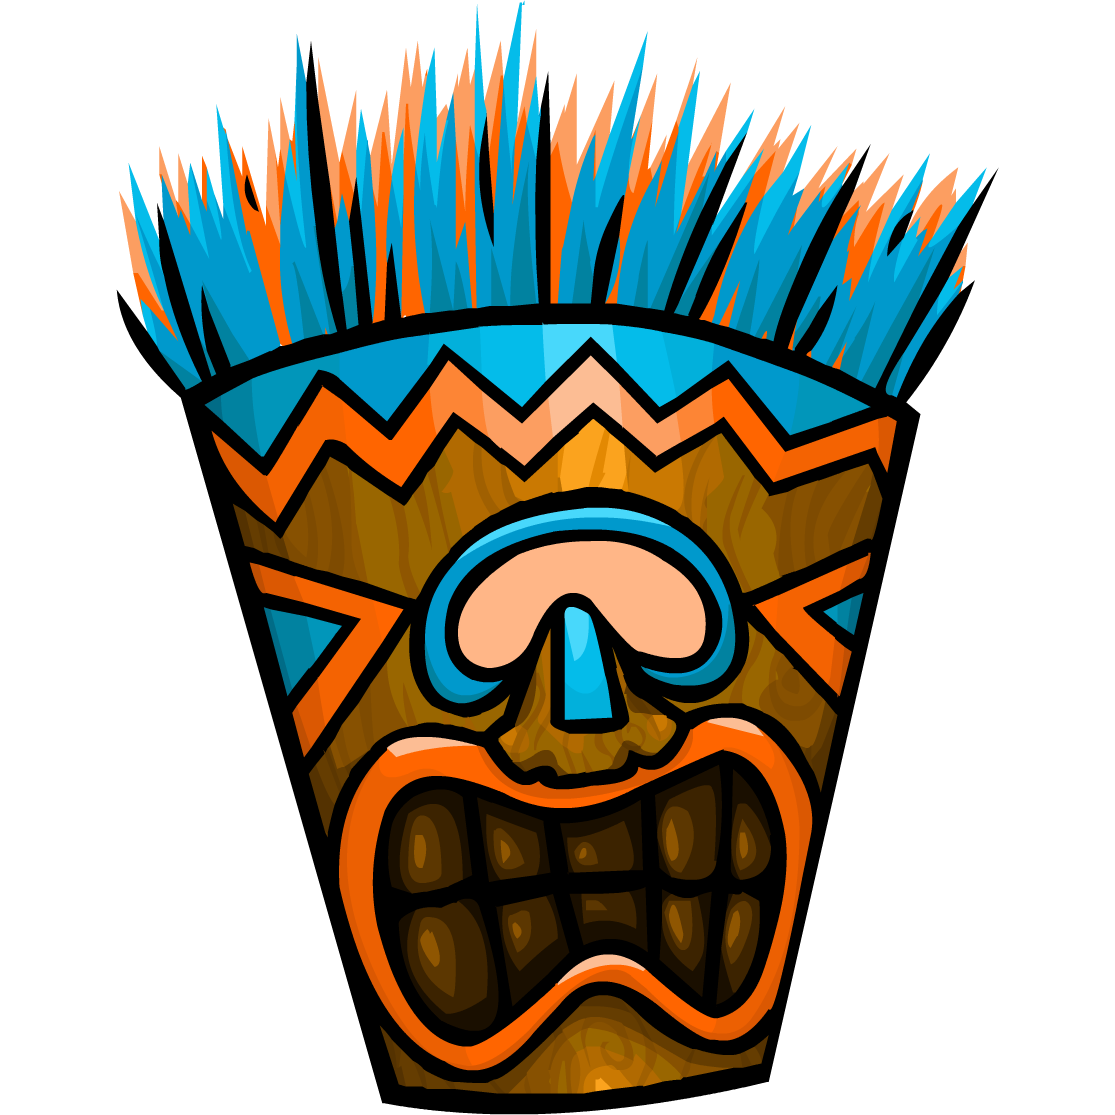 Tiki head png. Image bluetikimask club penguin